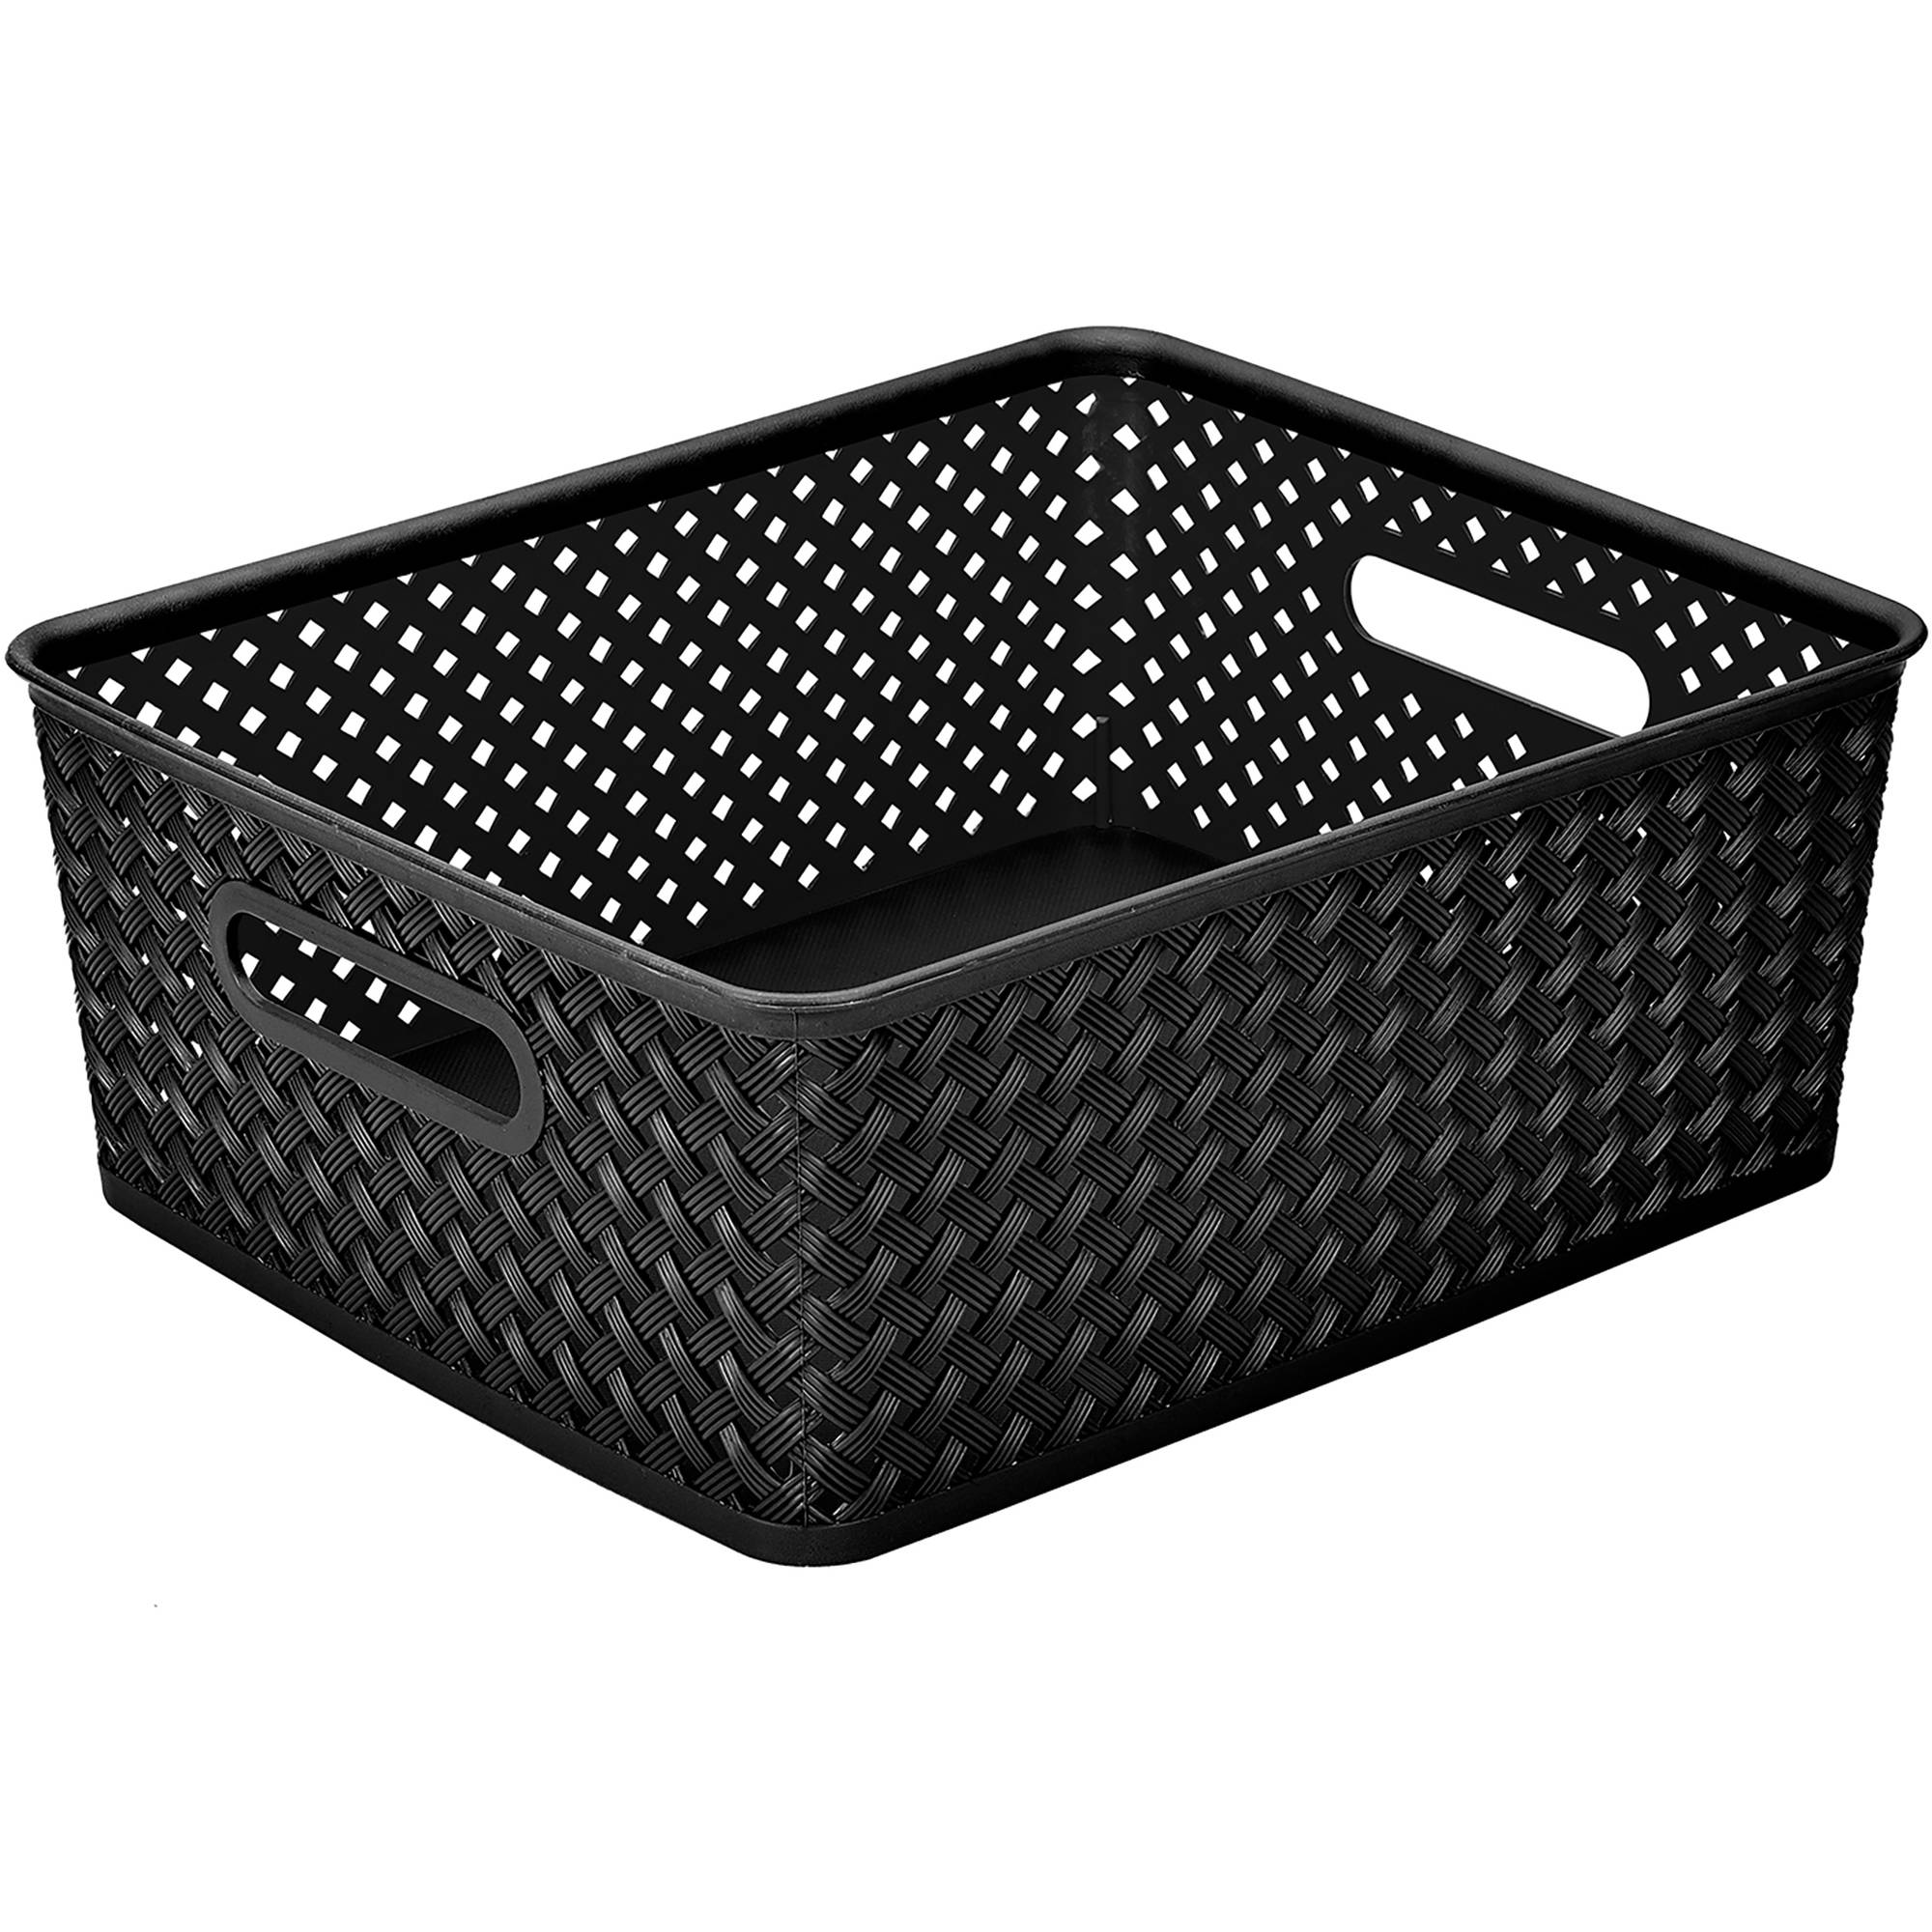 "Resin Wicker Storage Tote, Medium 14"" x 11.5"" x 5.15"", Basket Weave"